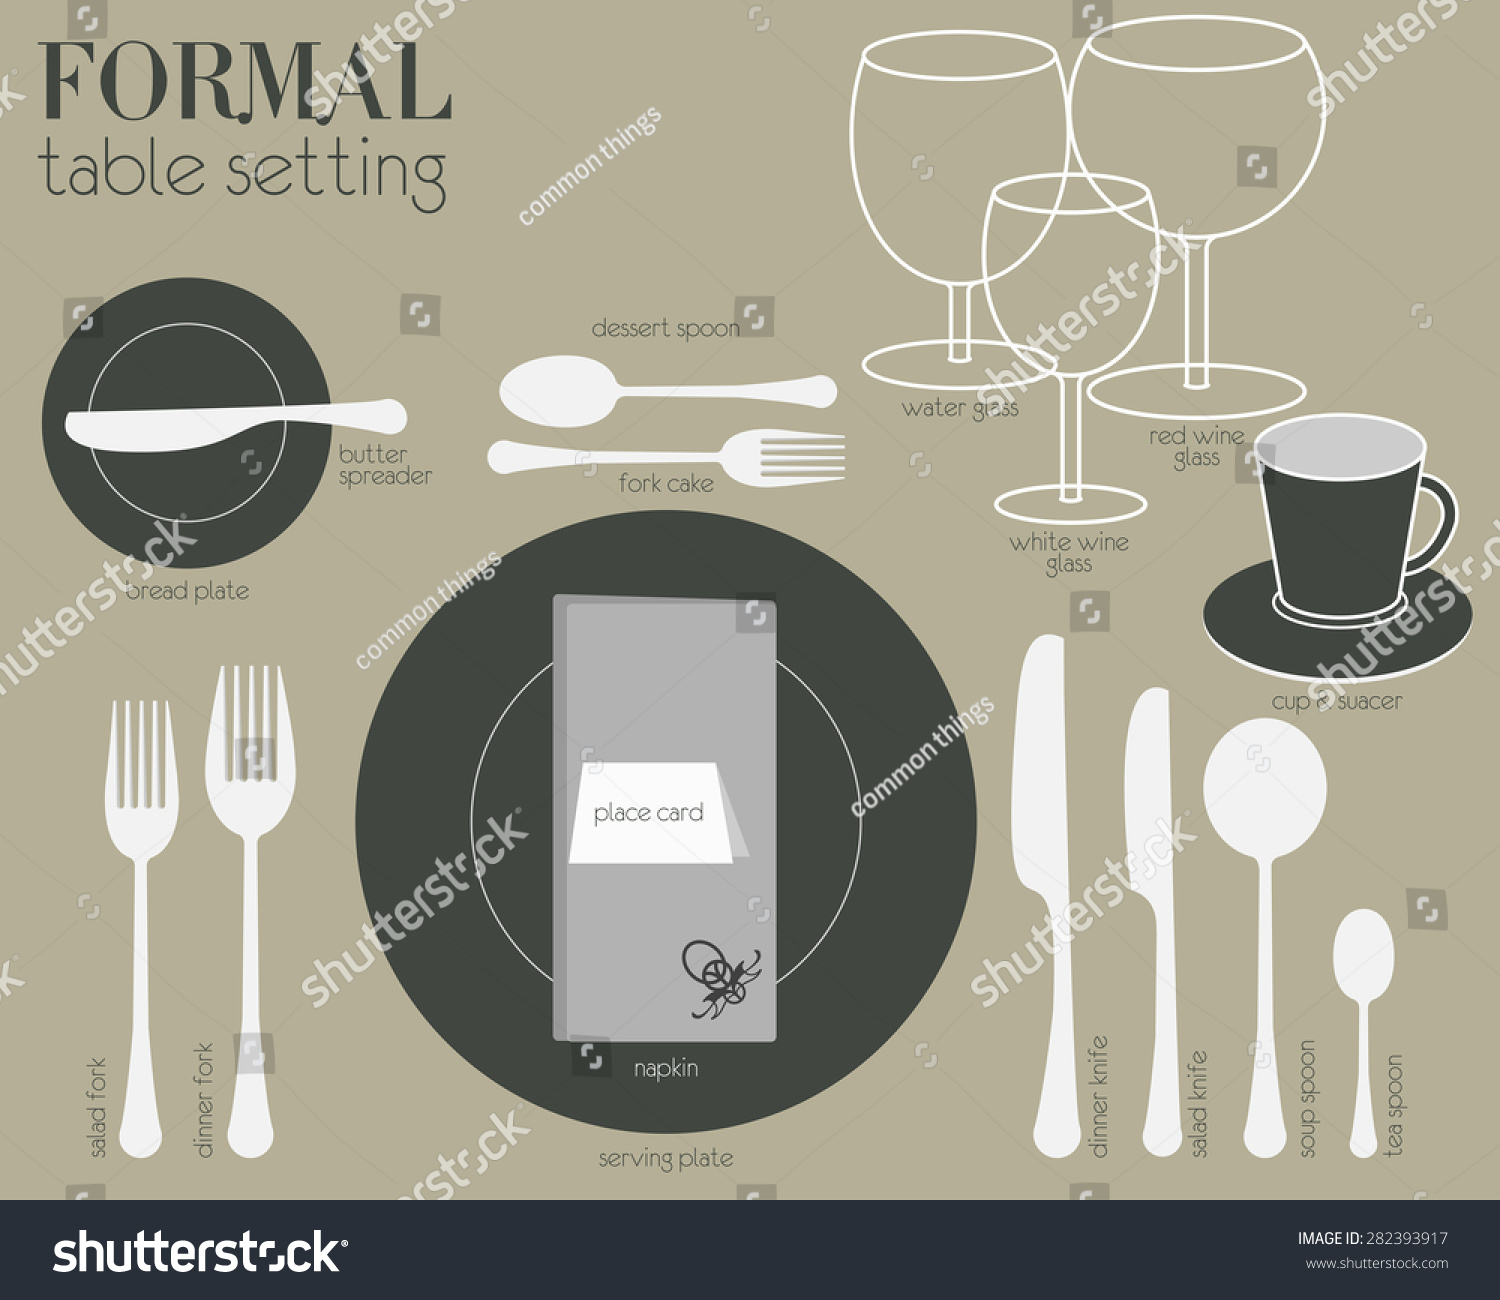 Formal dining table setting formal dining table setting for Table design vector